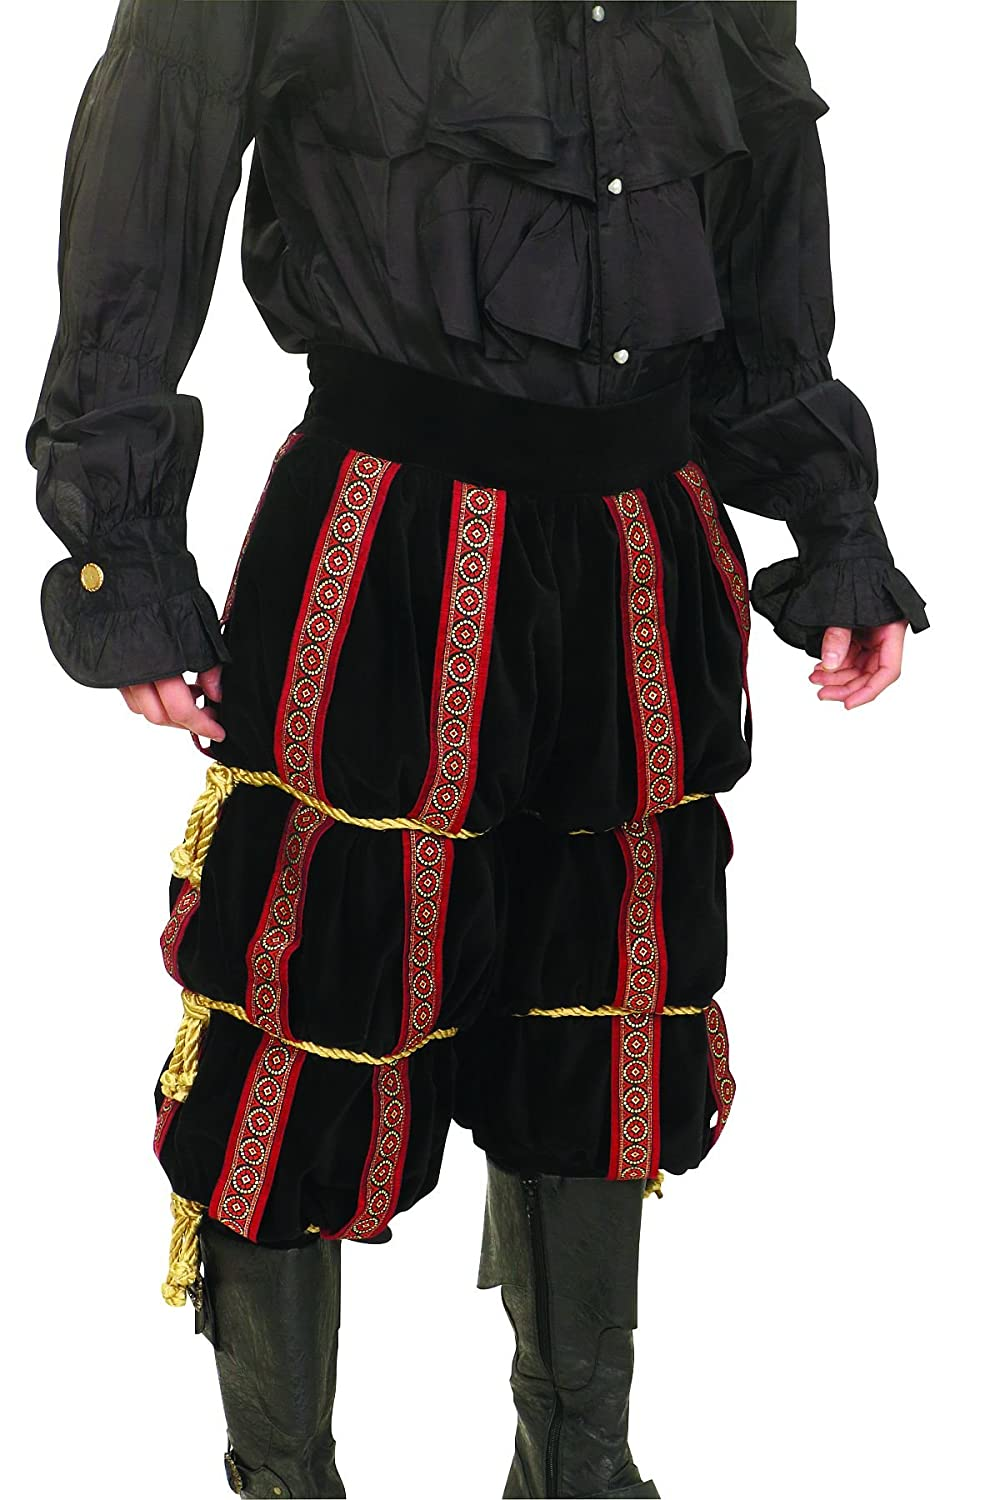 5008a91e4 Amazon.com  Museum Replicas The Dark Jester Harlequin Ensemble Men s  Medieval Court Jester Costume (Small)  Clothing